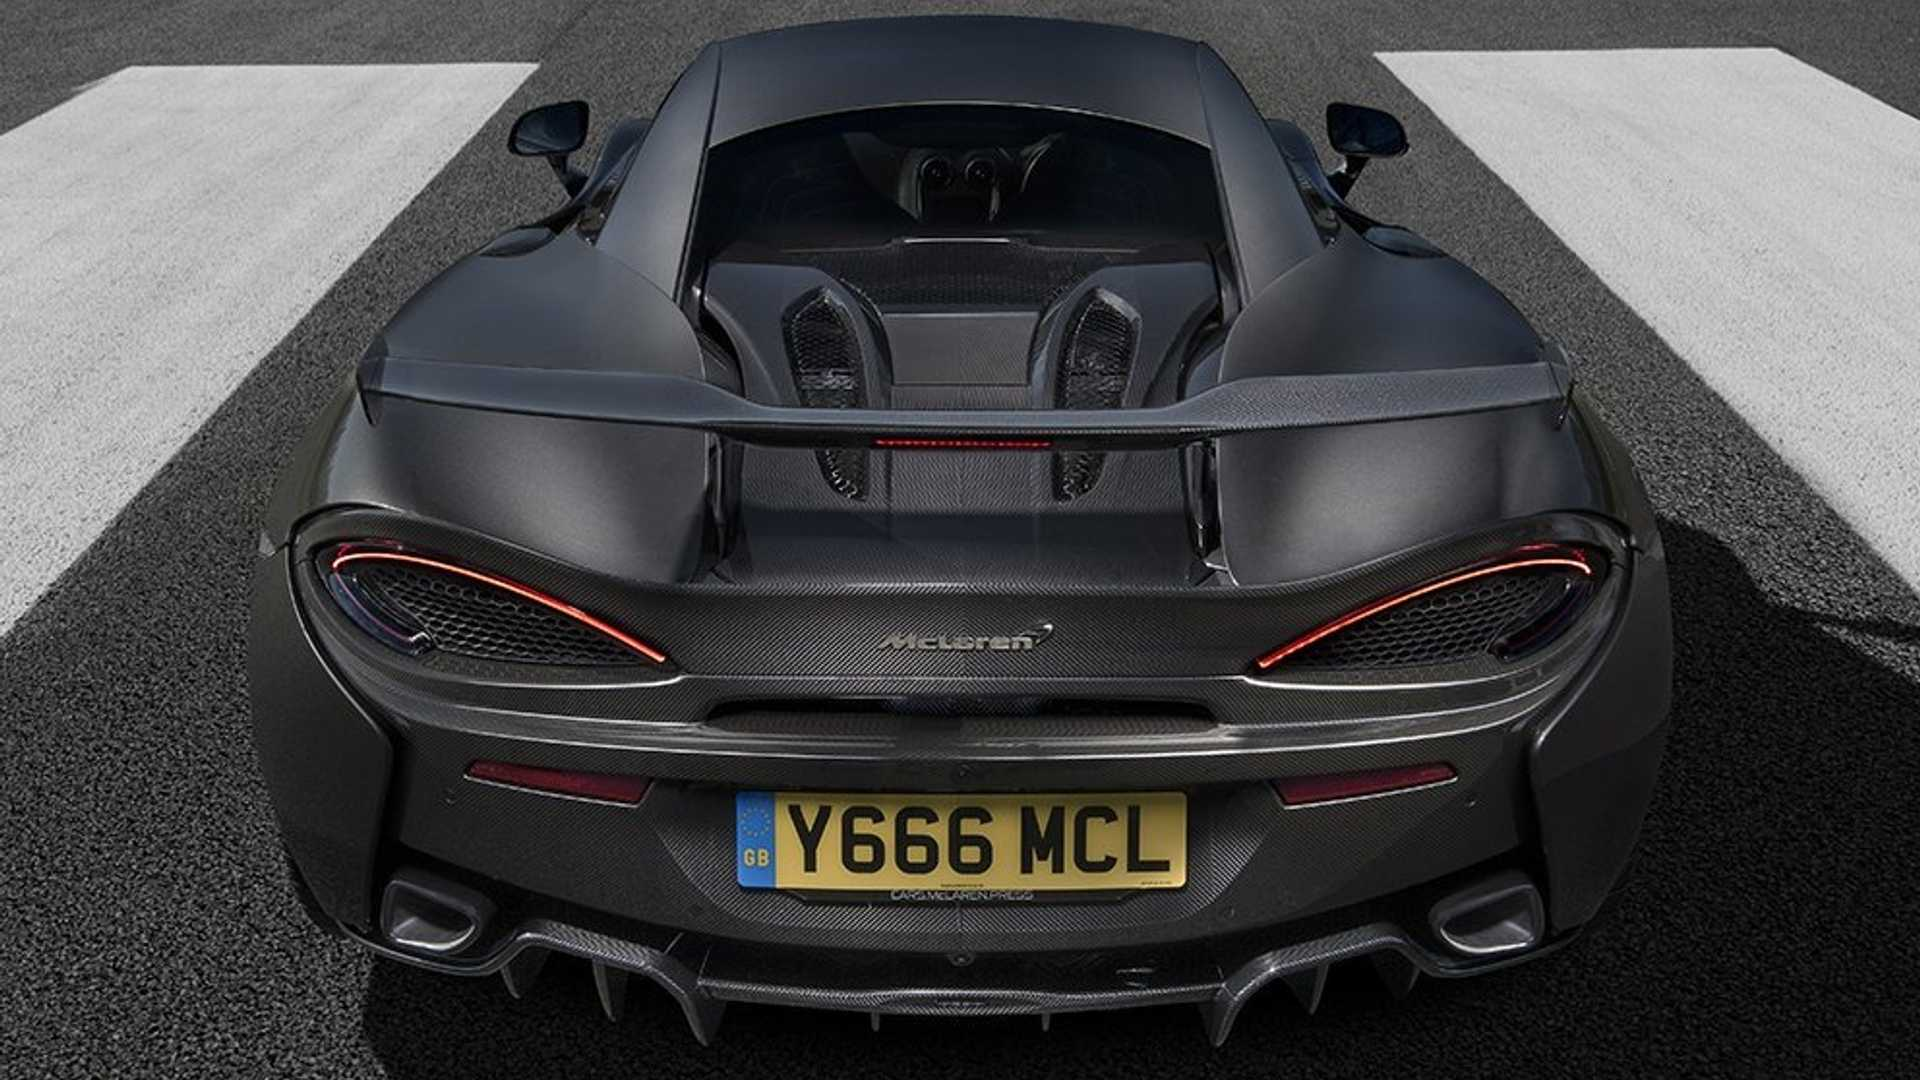 mclaren-high-downforce-kit-570s